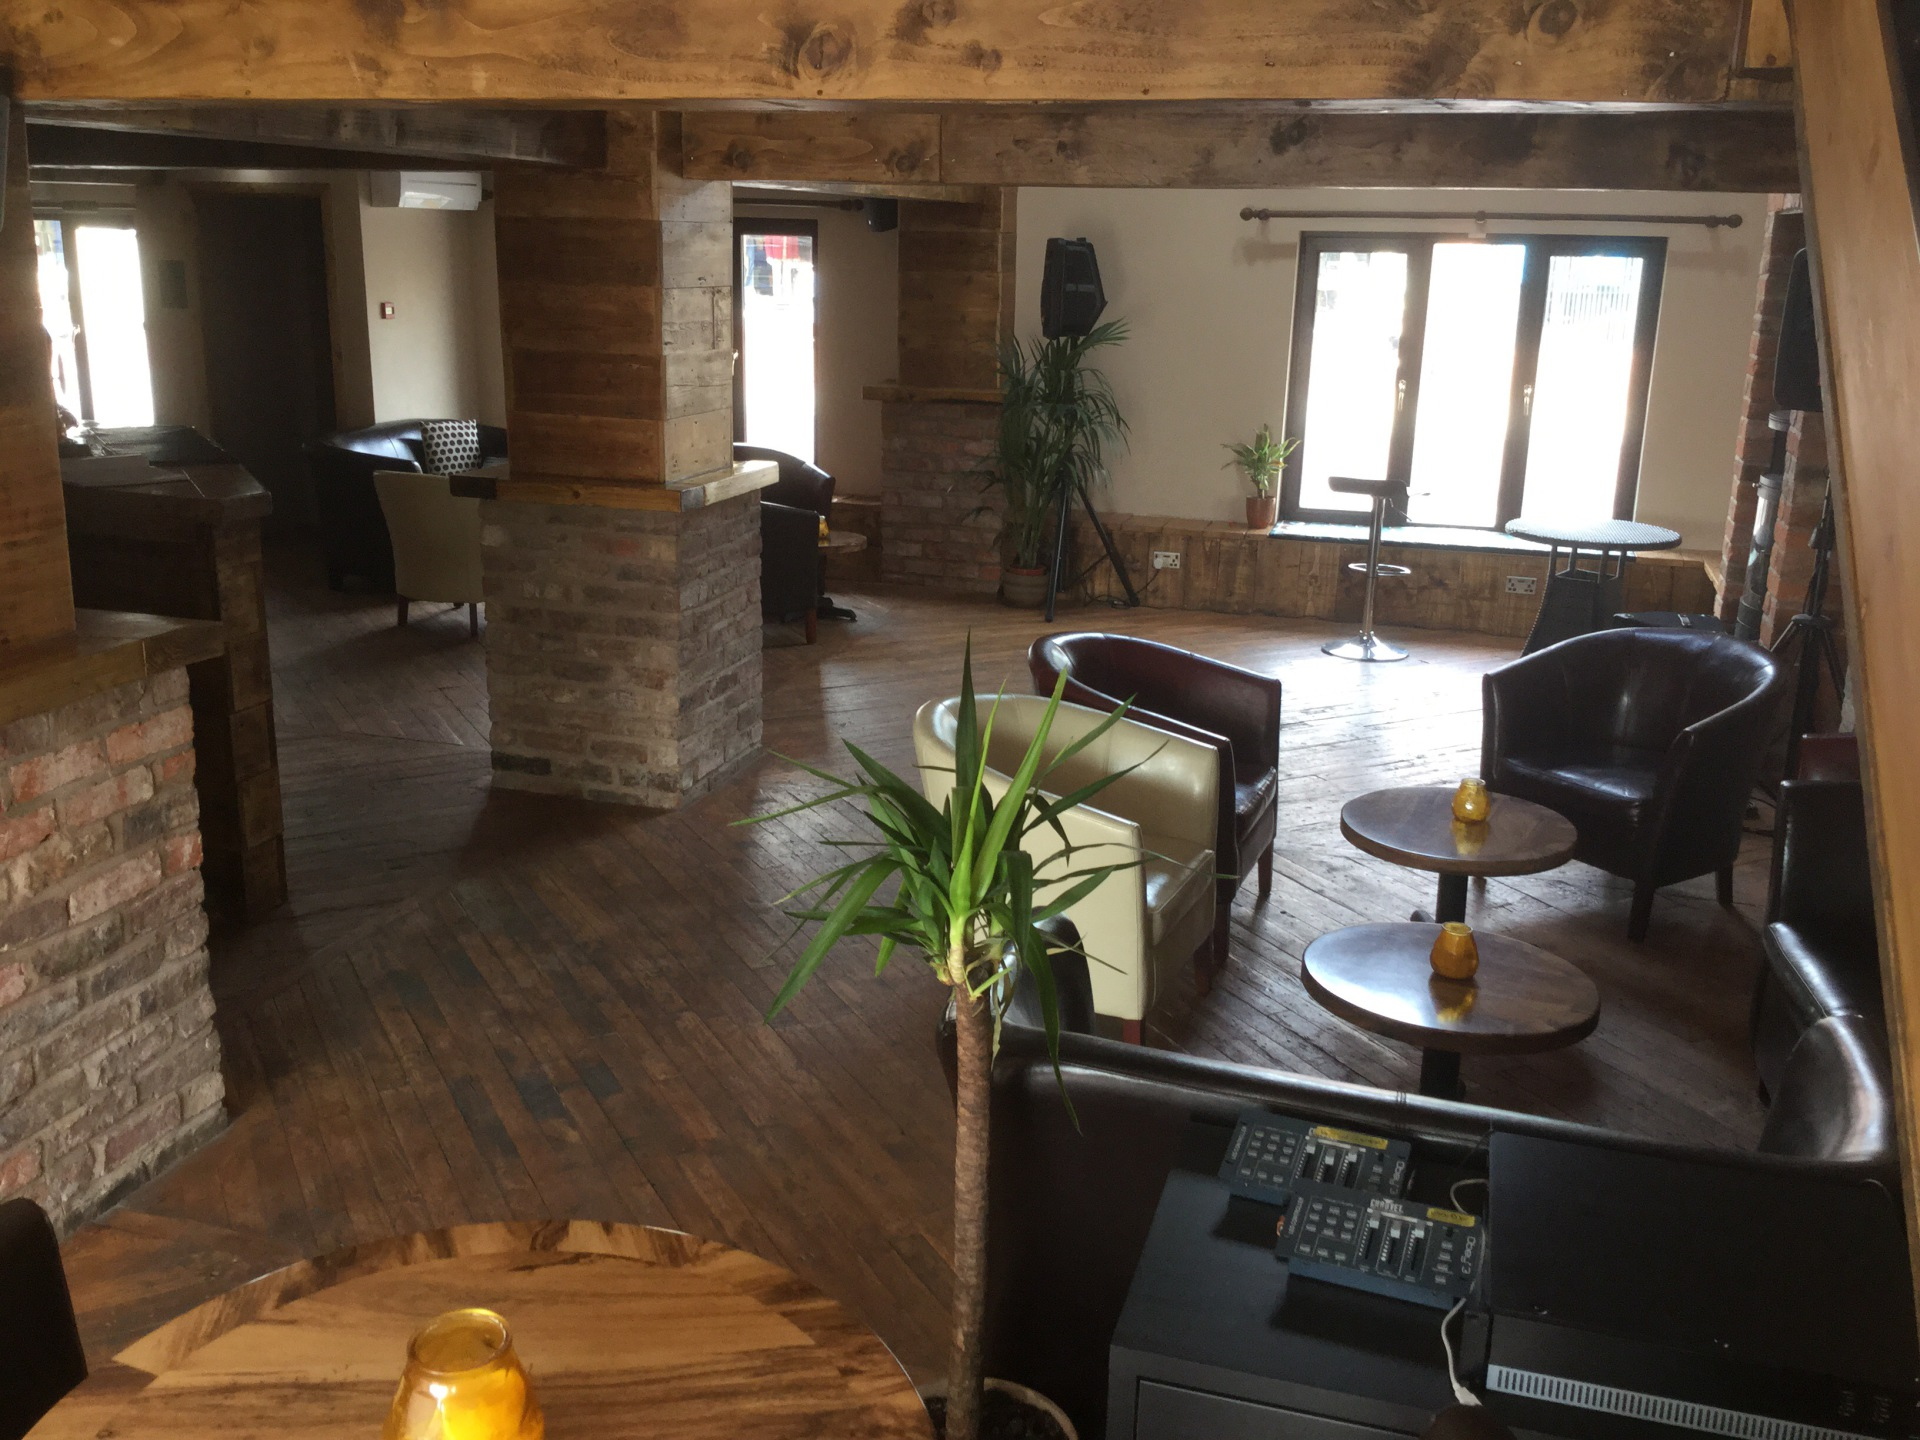 'The Acoustic Lounge, Poynton' Beautiful Rustic Space!